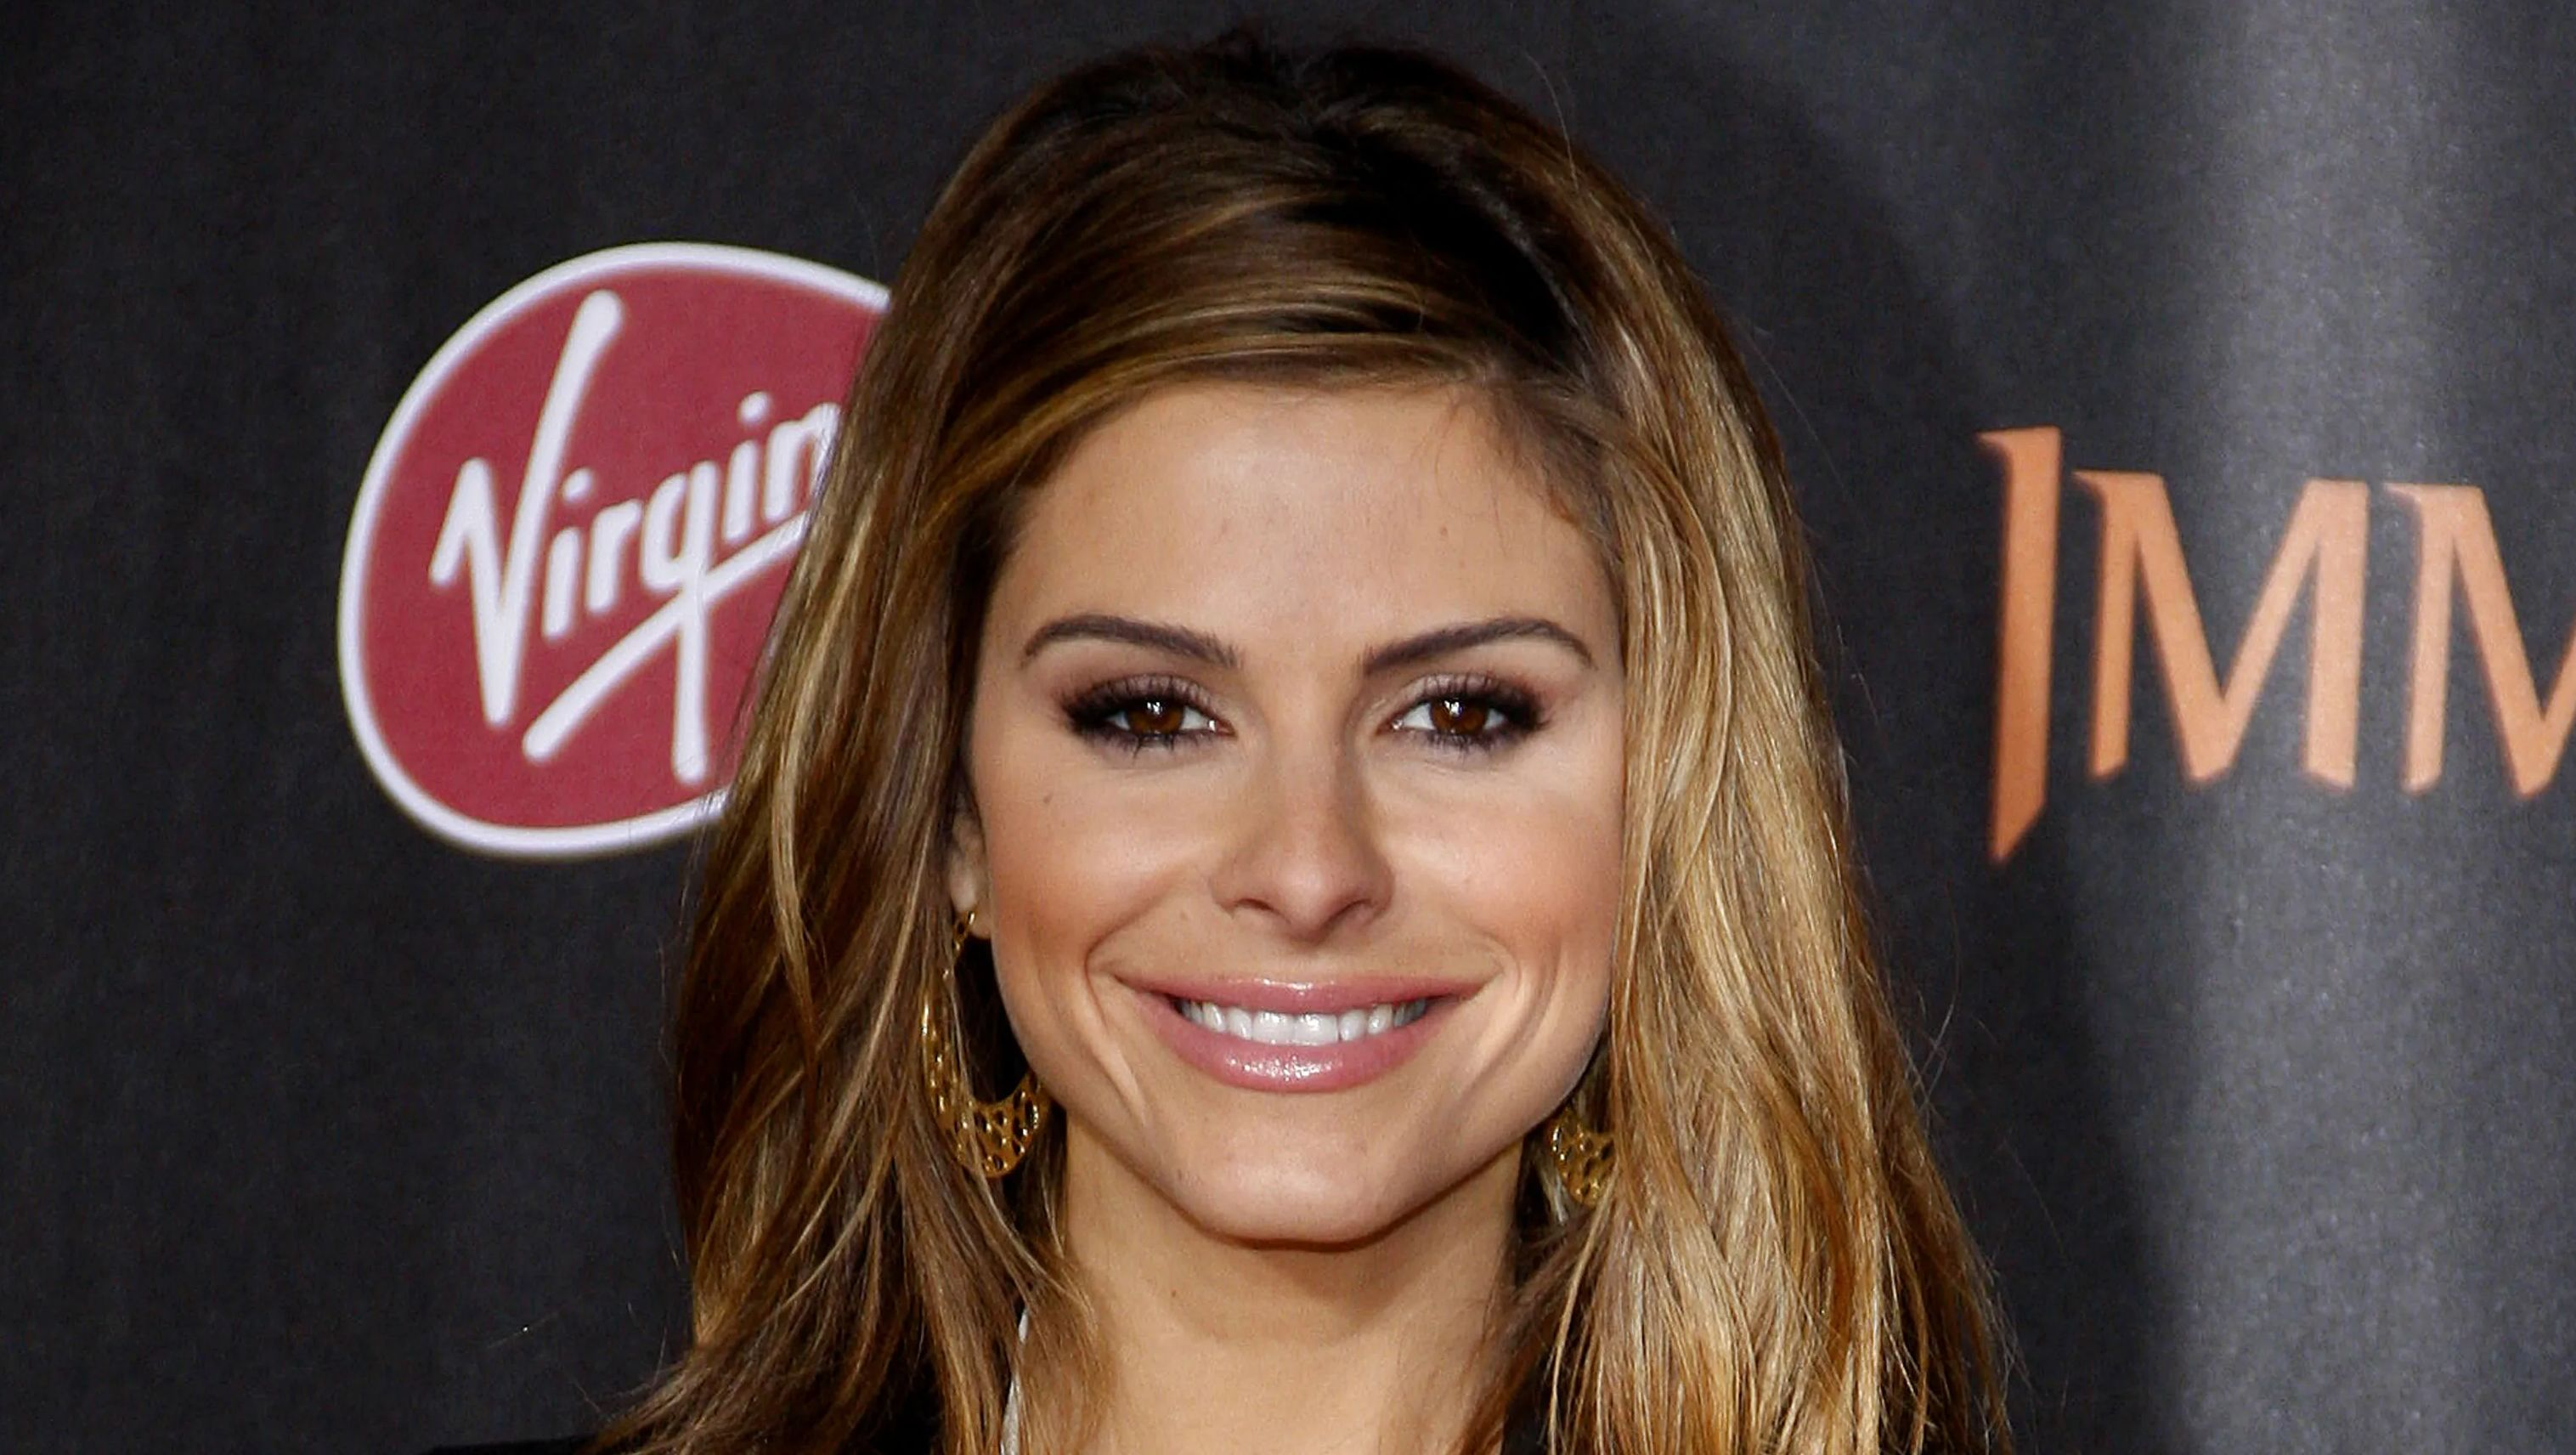 Maria Menounos on red carpet